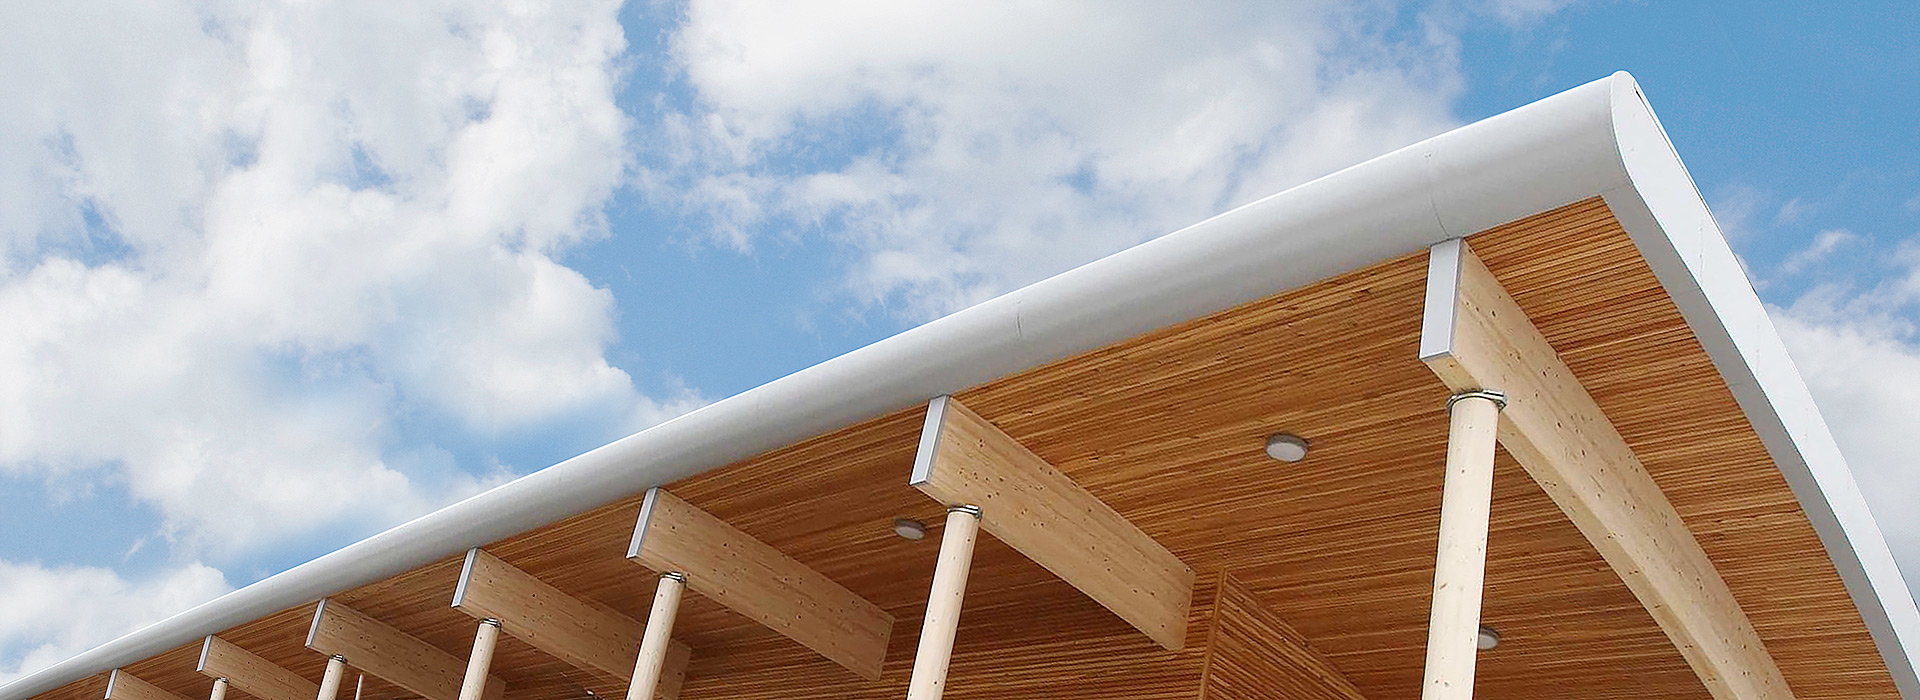 husk architectural bullnose fascia cladding park and ride